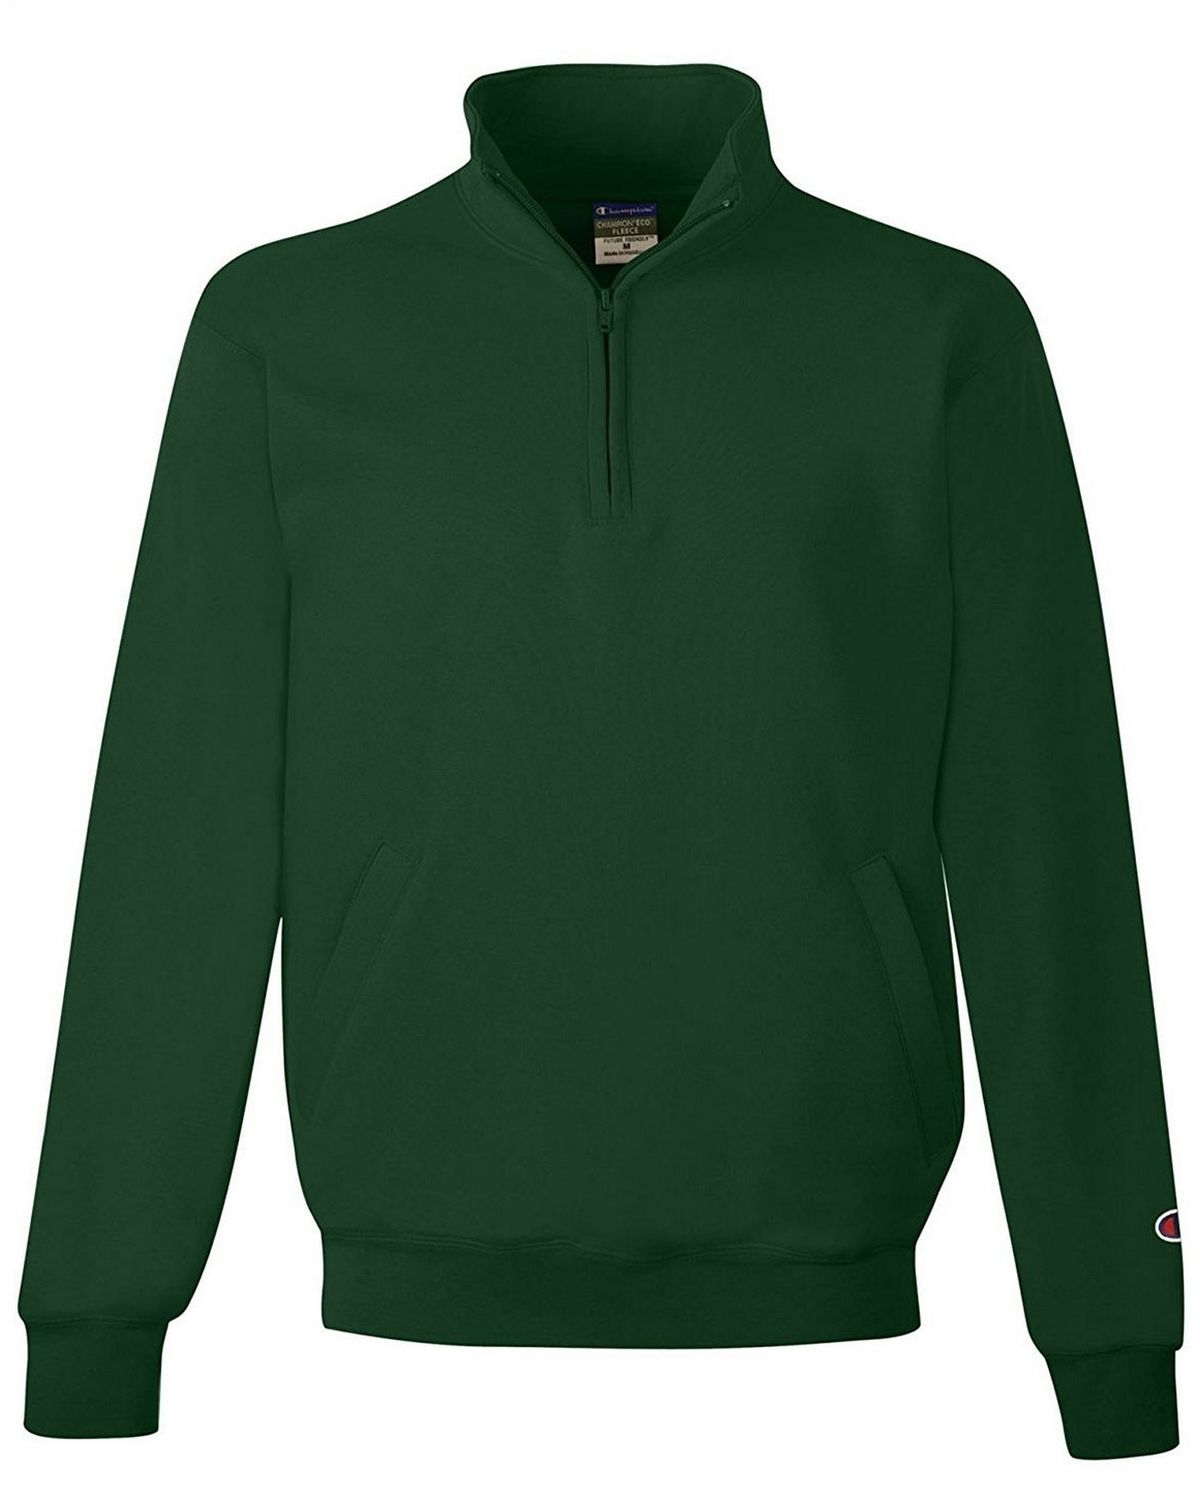 Champion S400 Eco Fleece 1/4 Zip - Navy - L S400